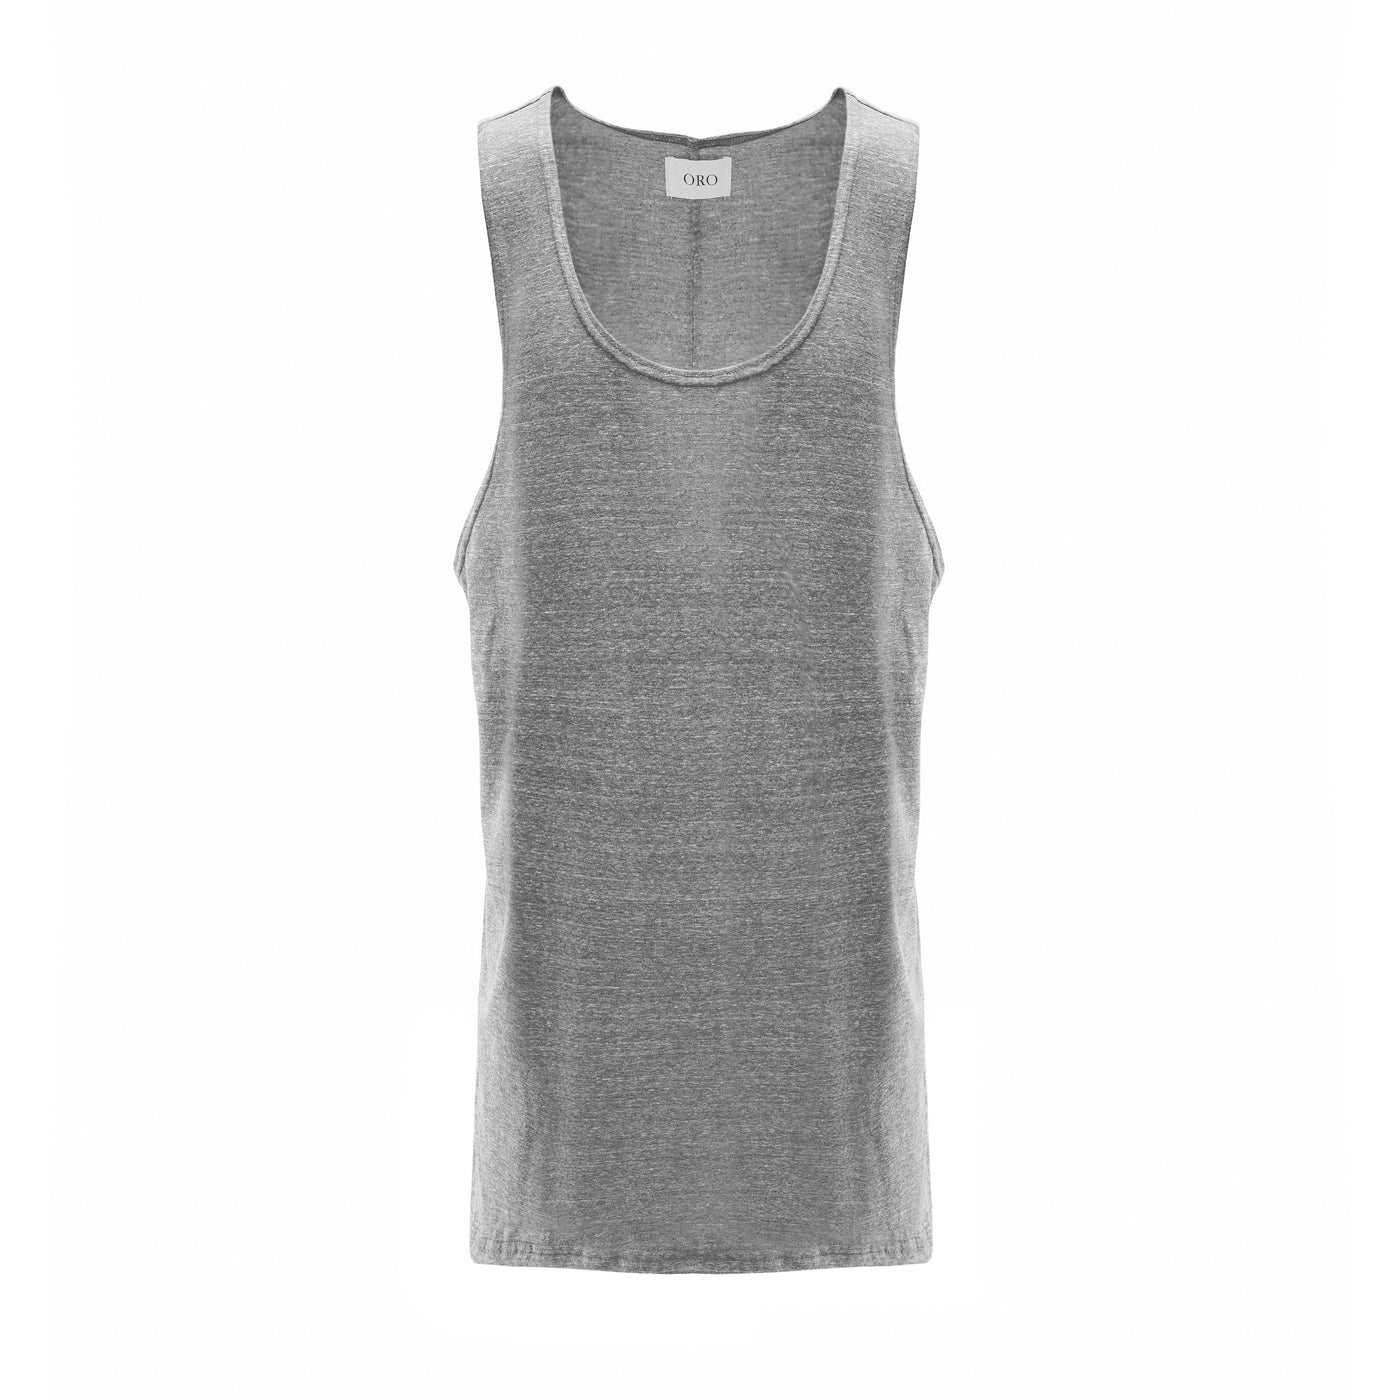 THE ESSENTIAL GREY TANK TOP